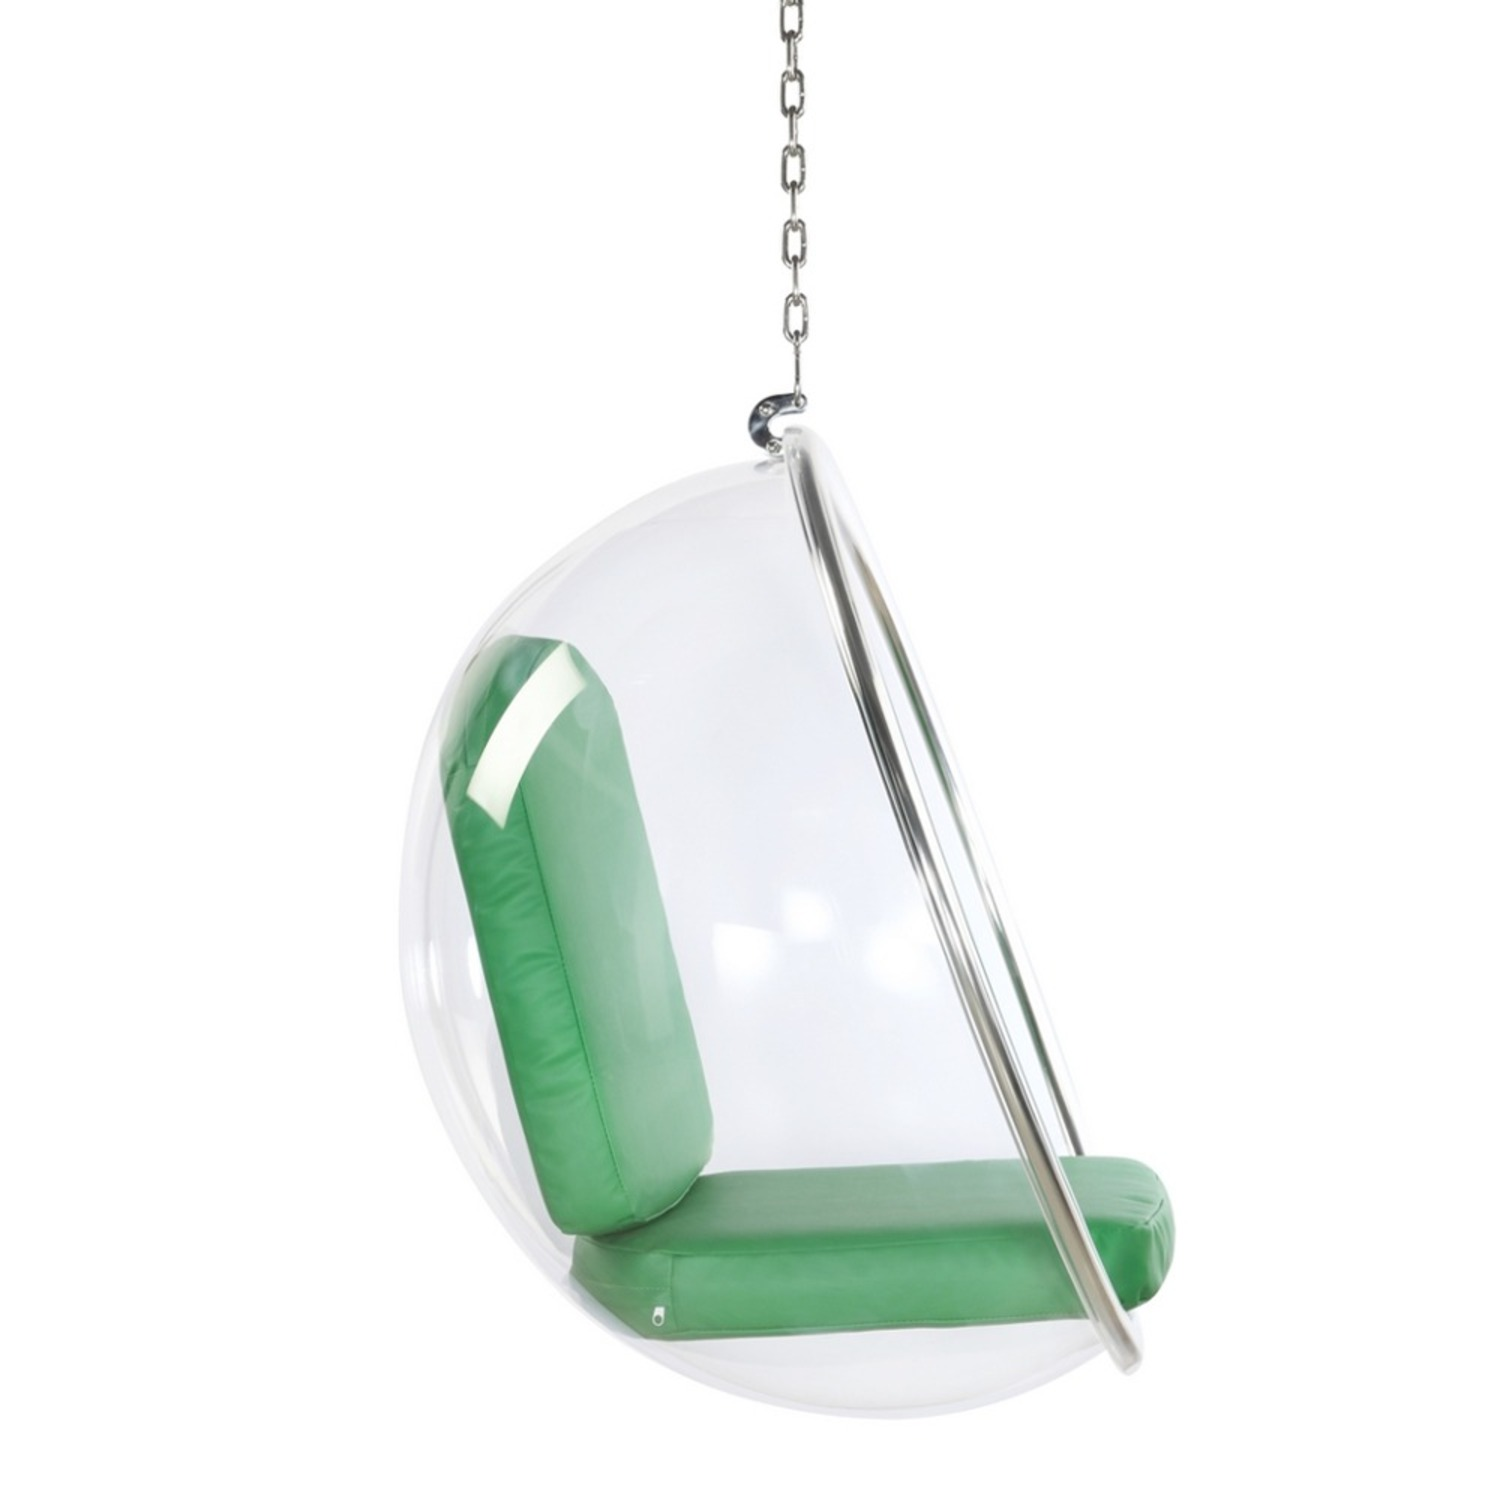 Hanging Chair In Clear Acrylic & Green PU Leather - image-1